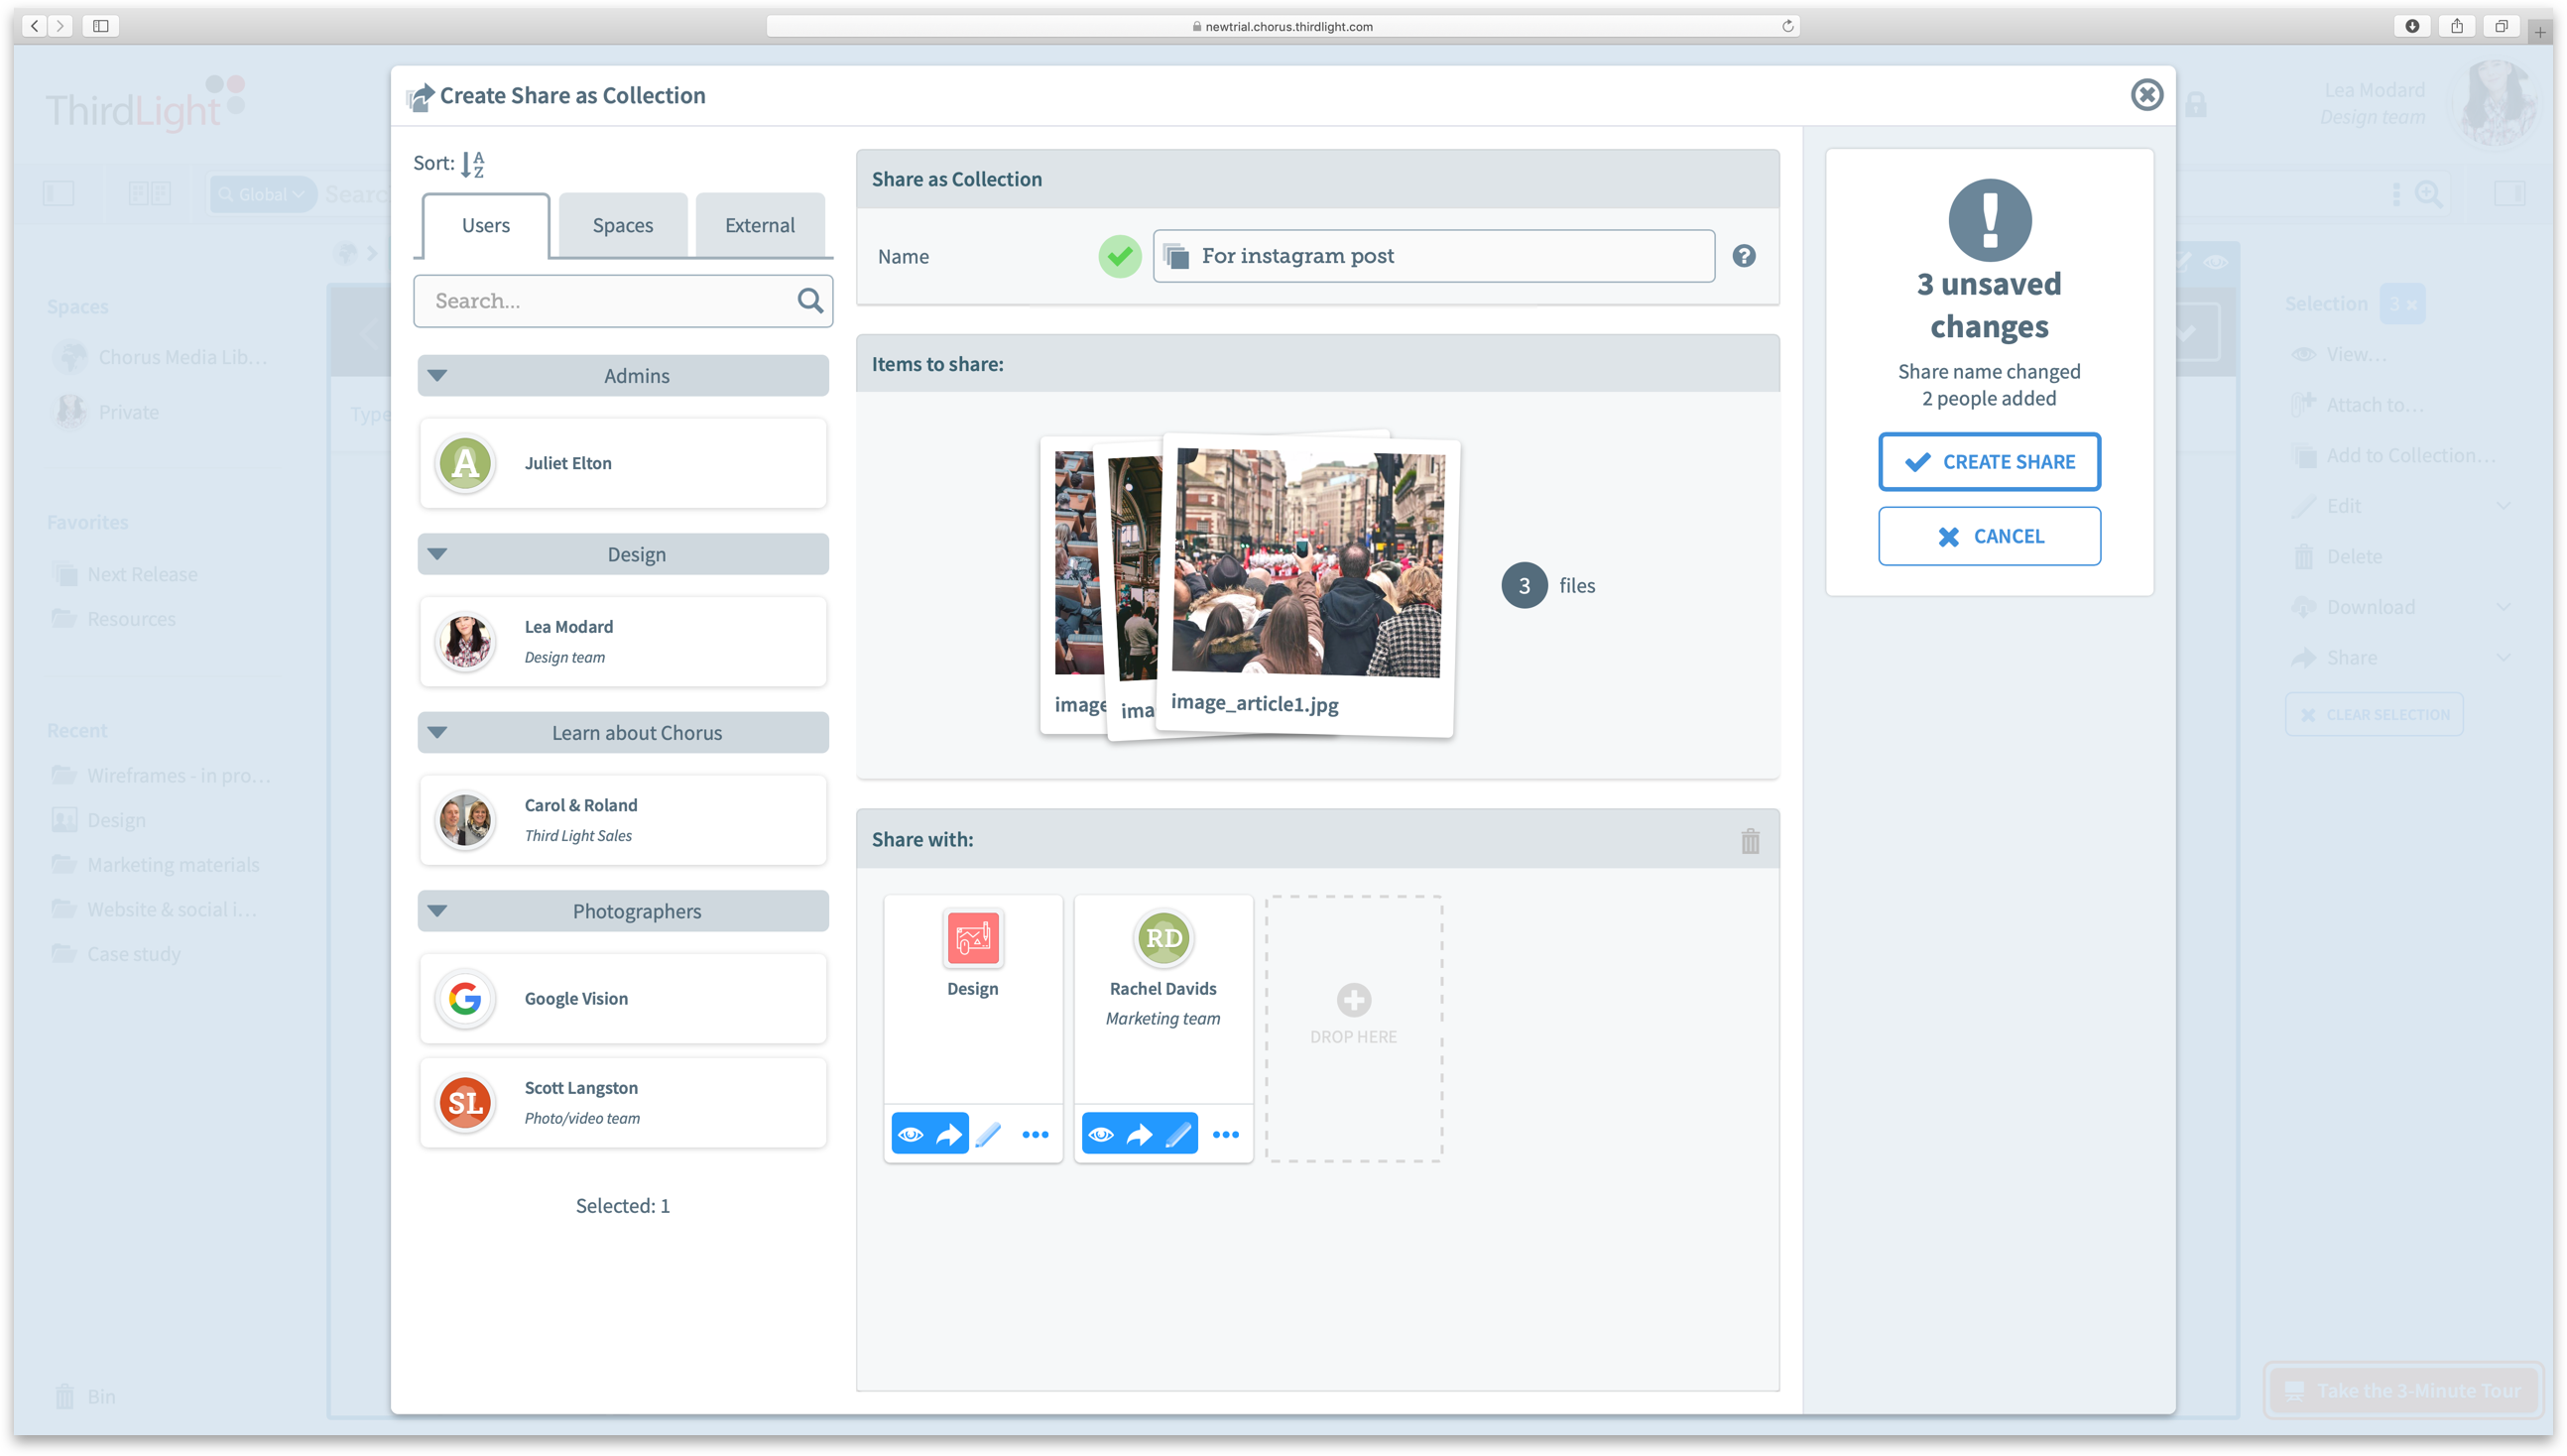 Share with multiple users - with the flexibility to give each recipient different usage permissions